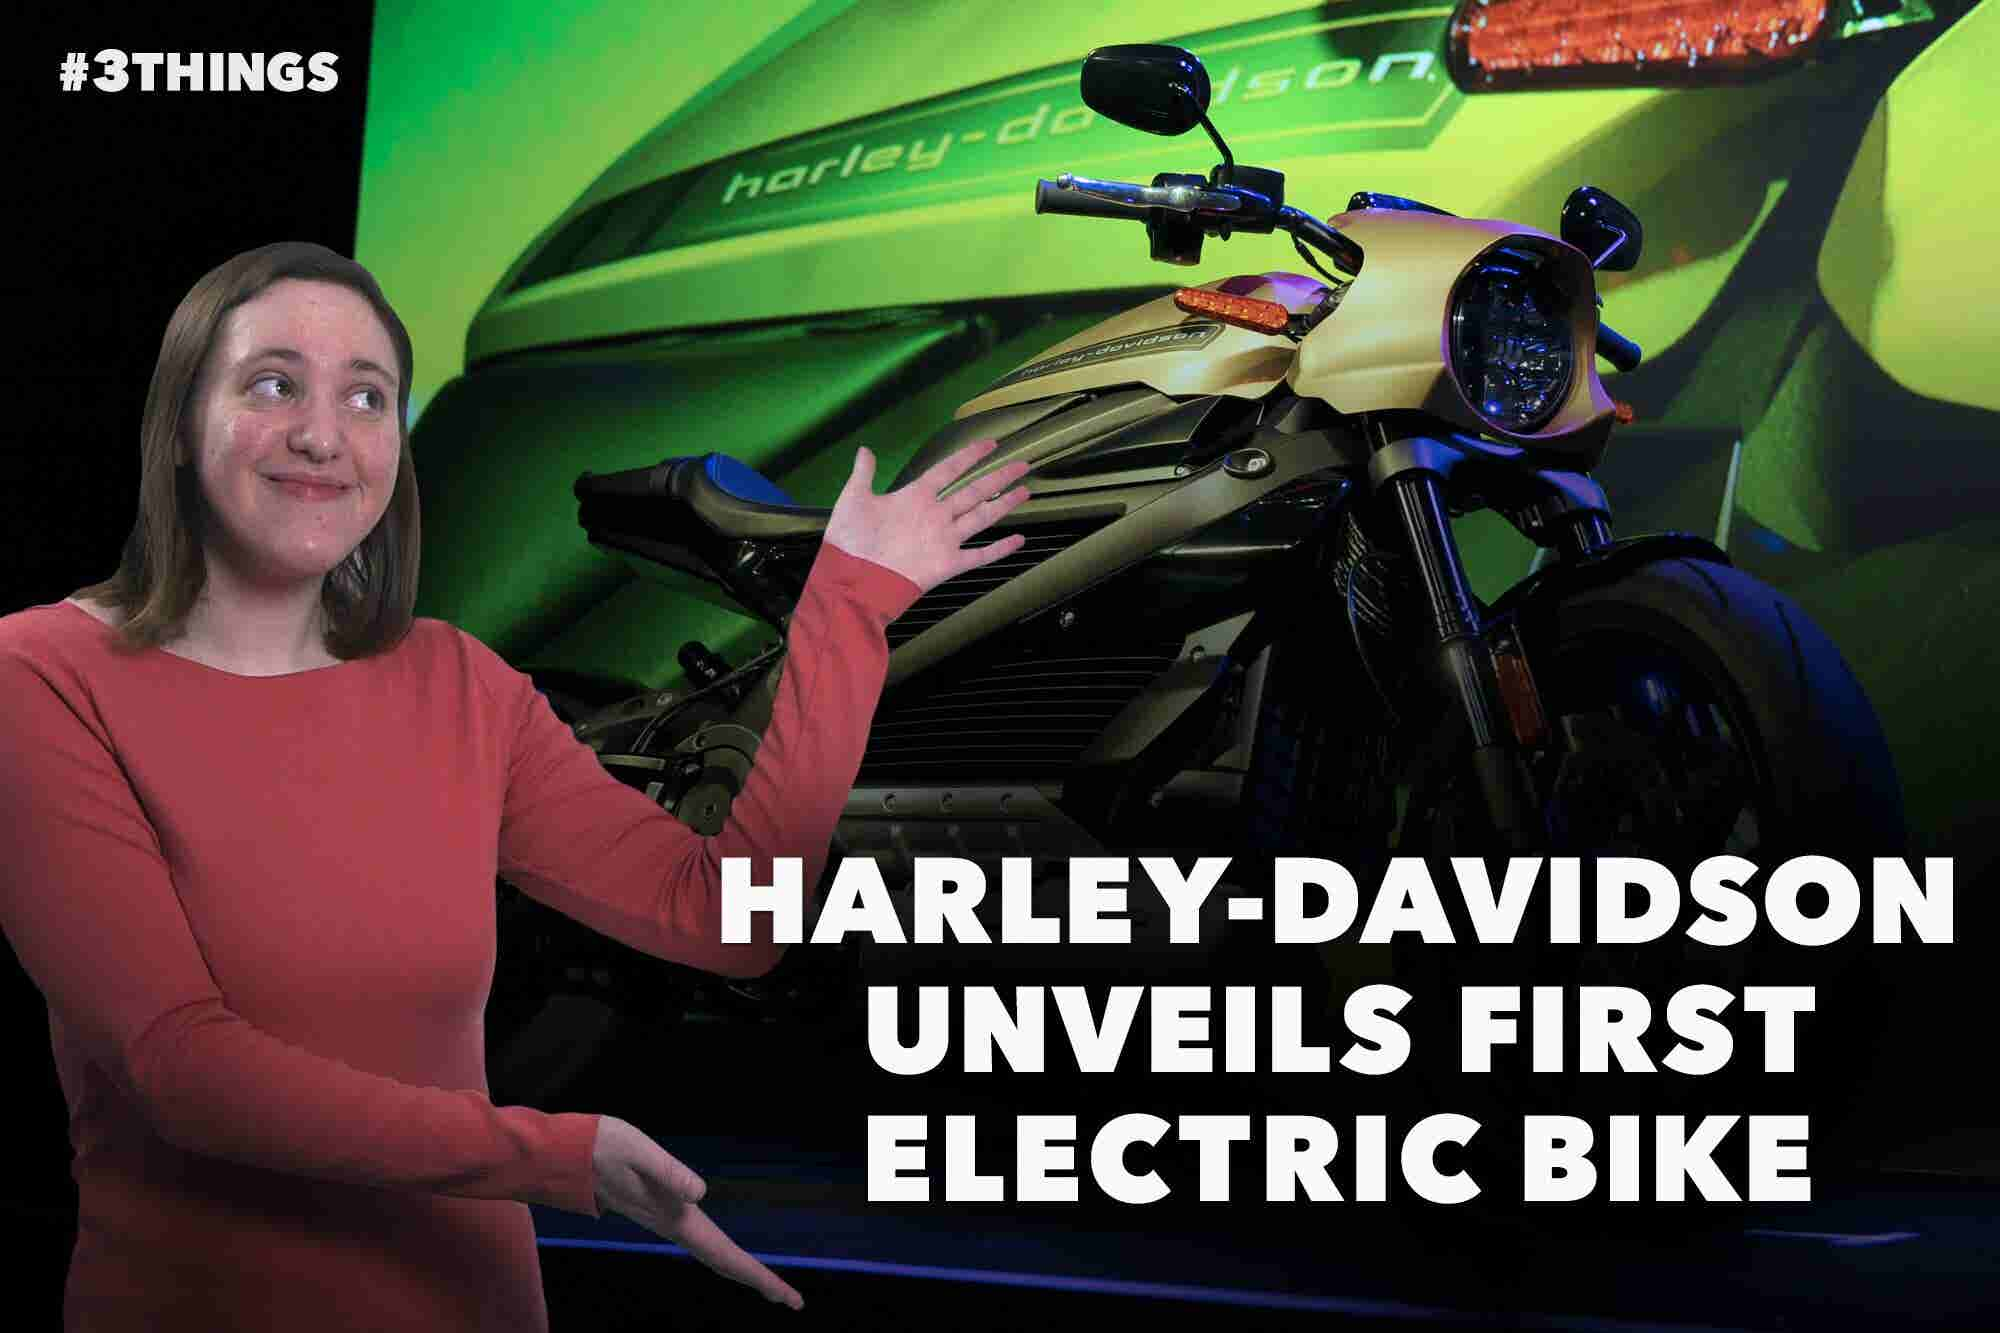 Harley-Davidson Unveils First Ever Electric Bike (60-Second Video)